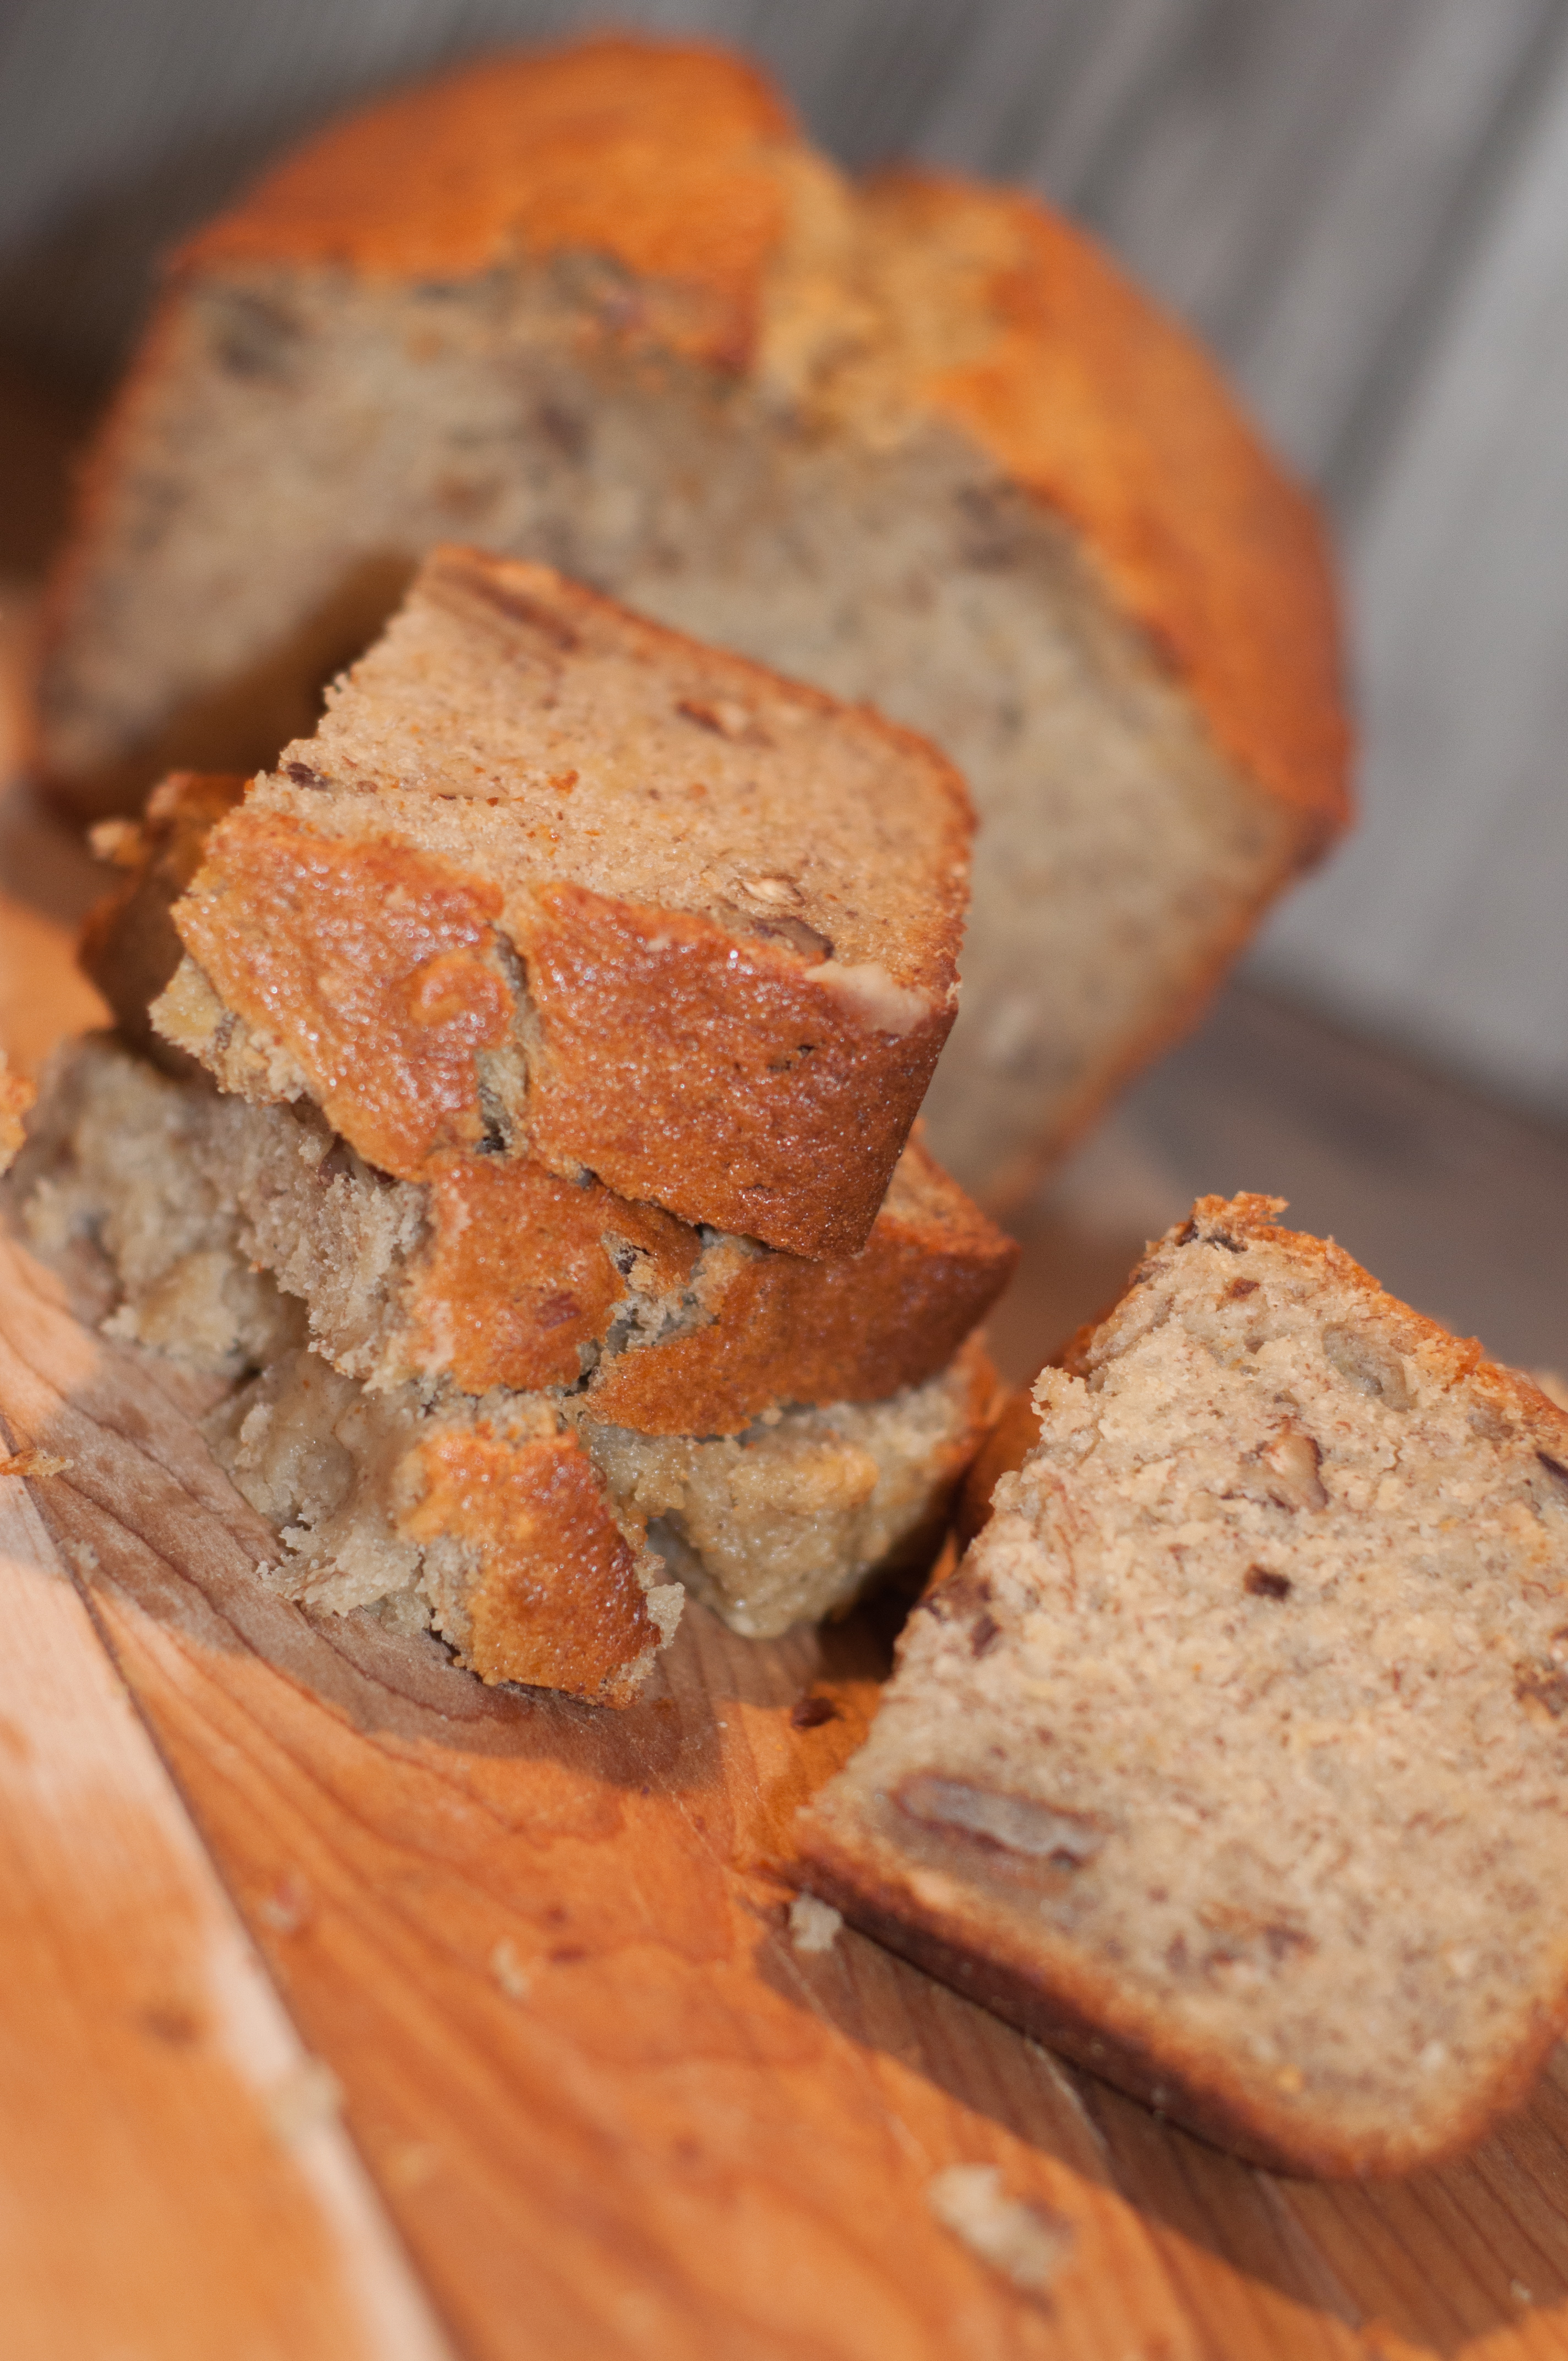 how to tell if banana bread is bad